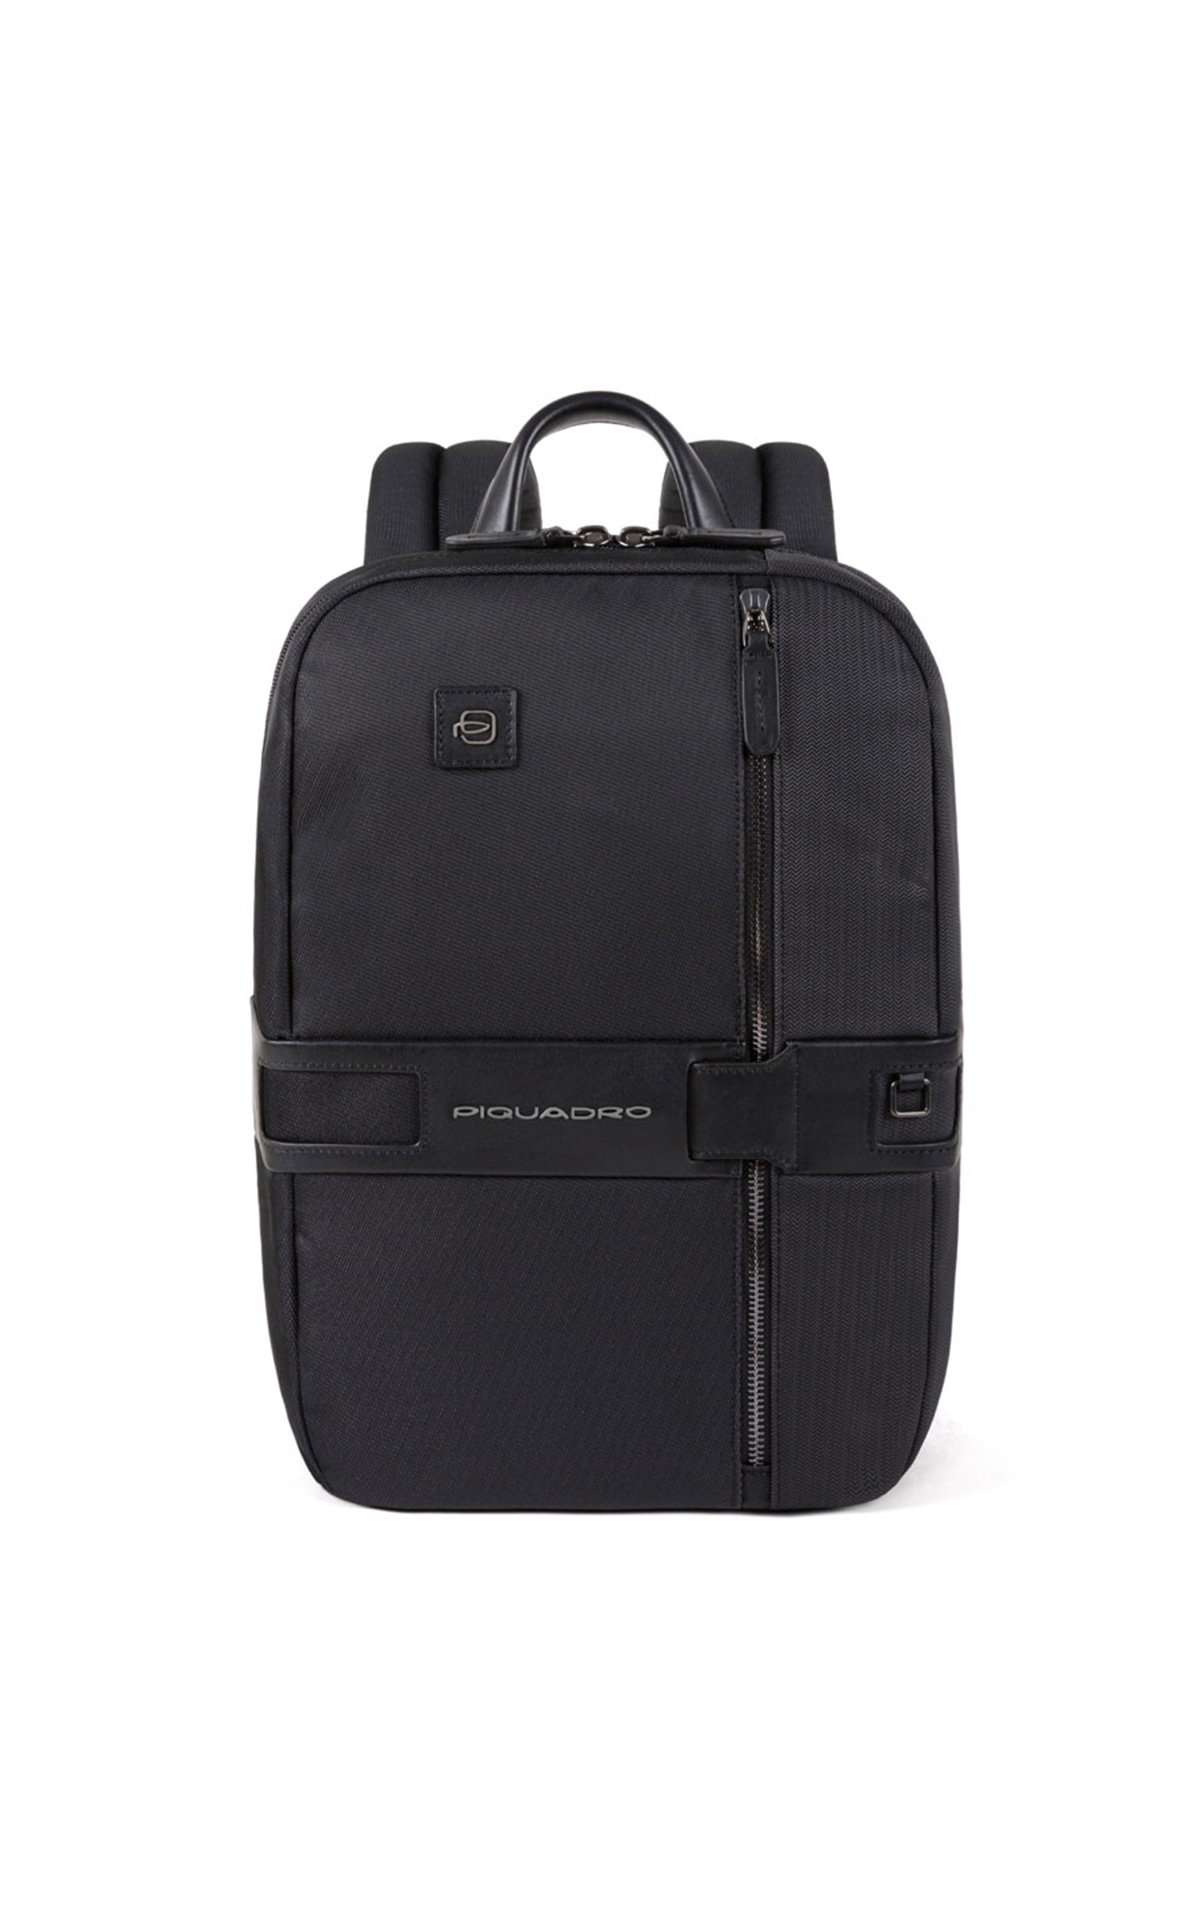 Black backpack Piquadro